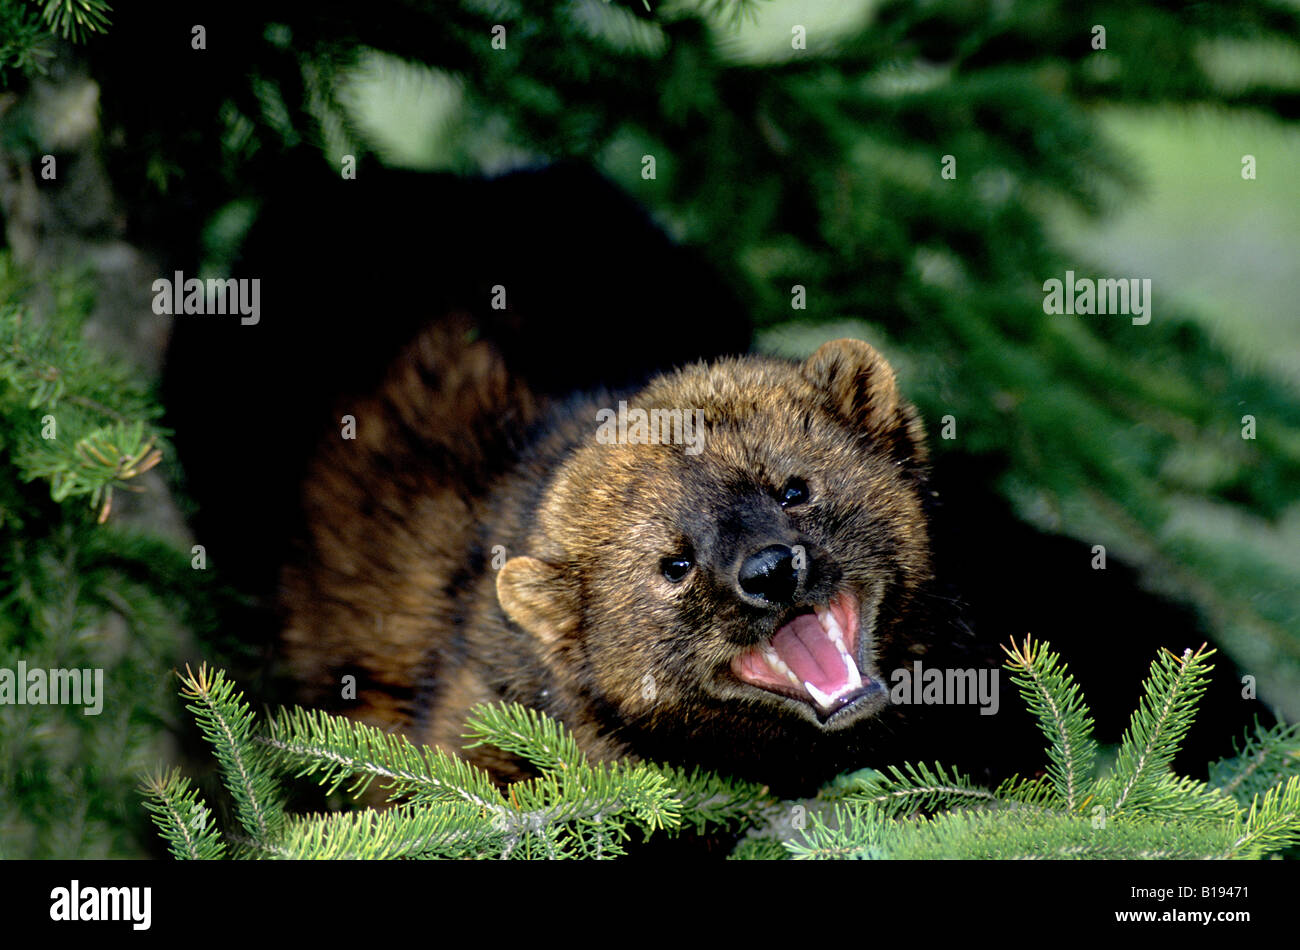 Adult fisher (Martes pennanti) climbing in a spruce tree, Alberta, Canada. - Stock Image